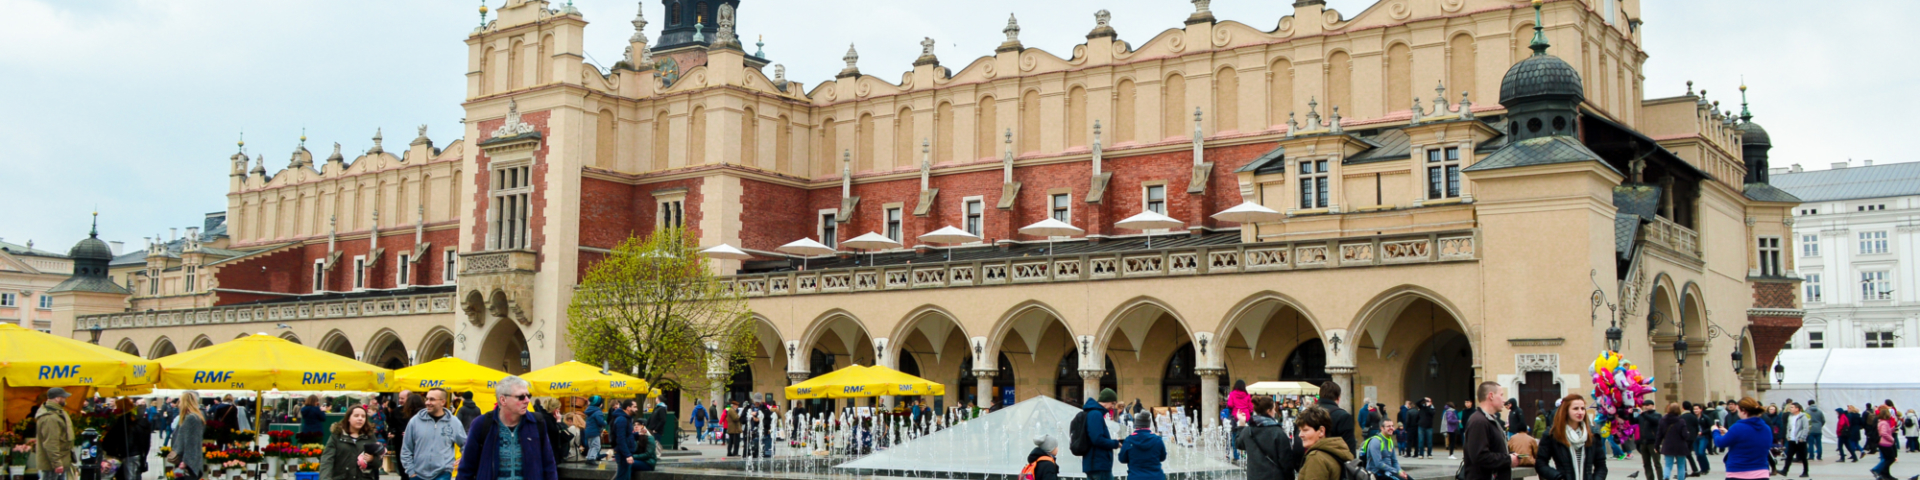 Cloth Hall, Main Square, Krakow